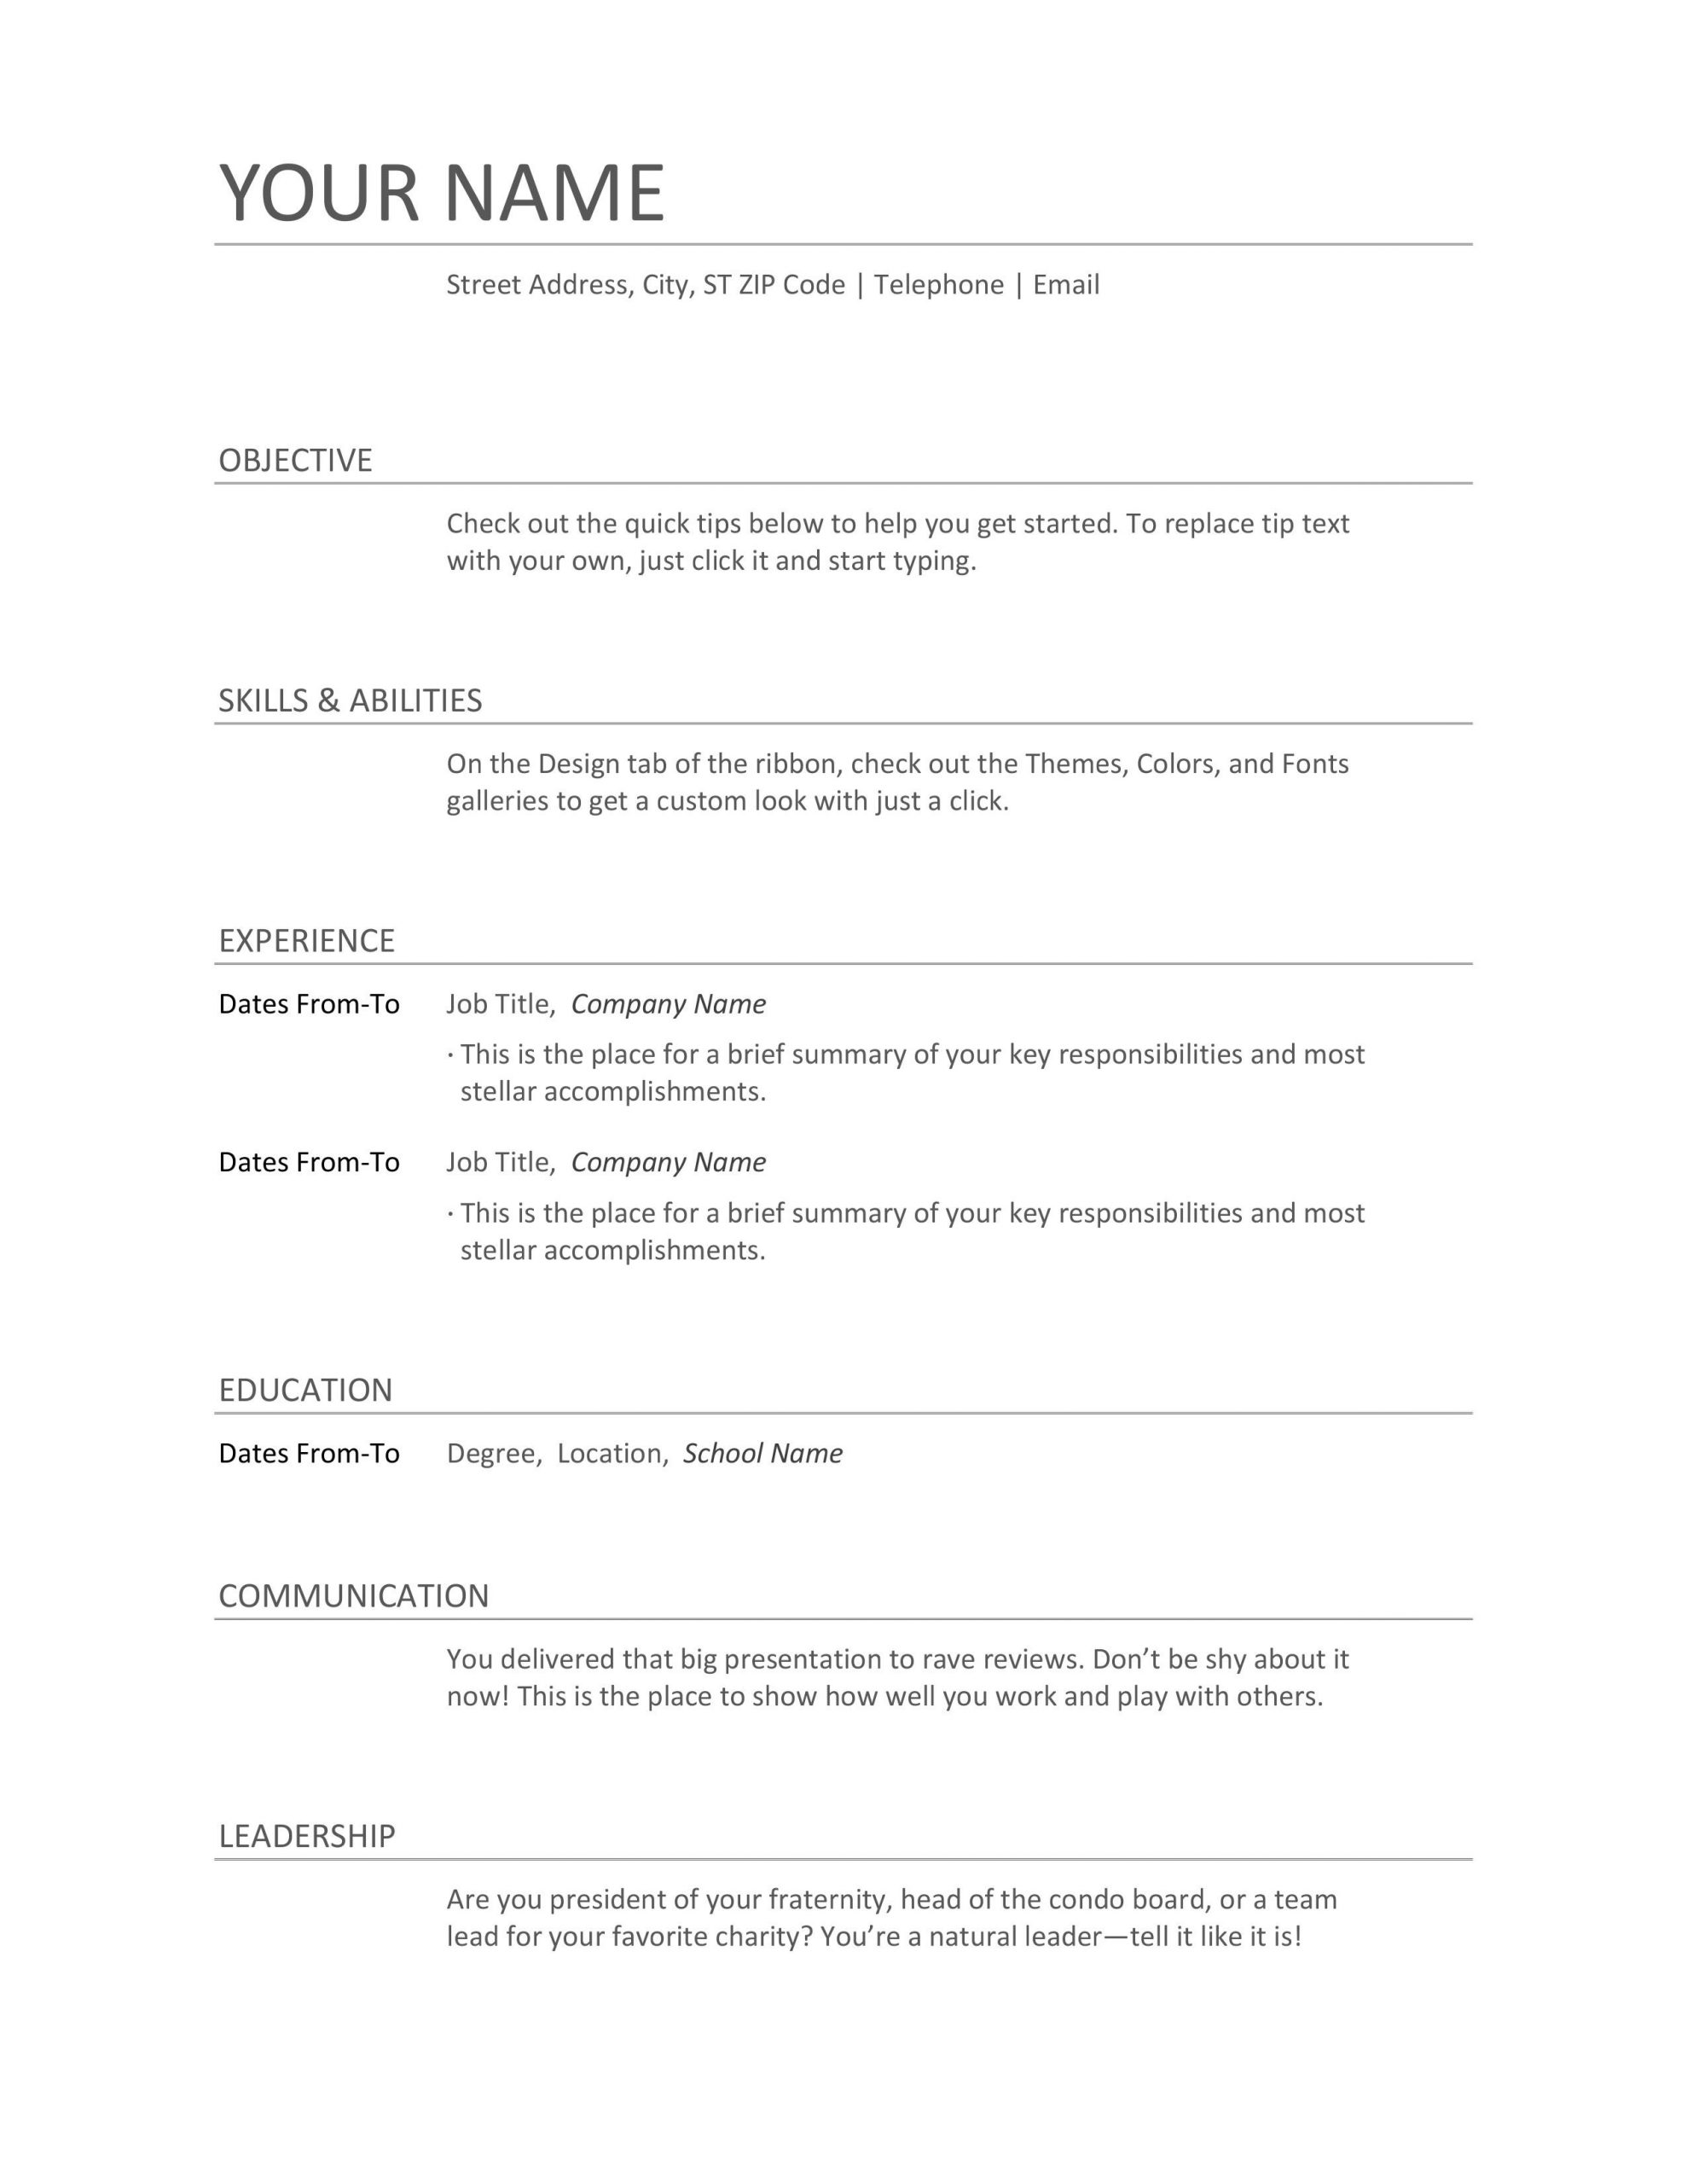 different formats of resume